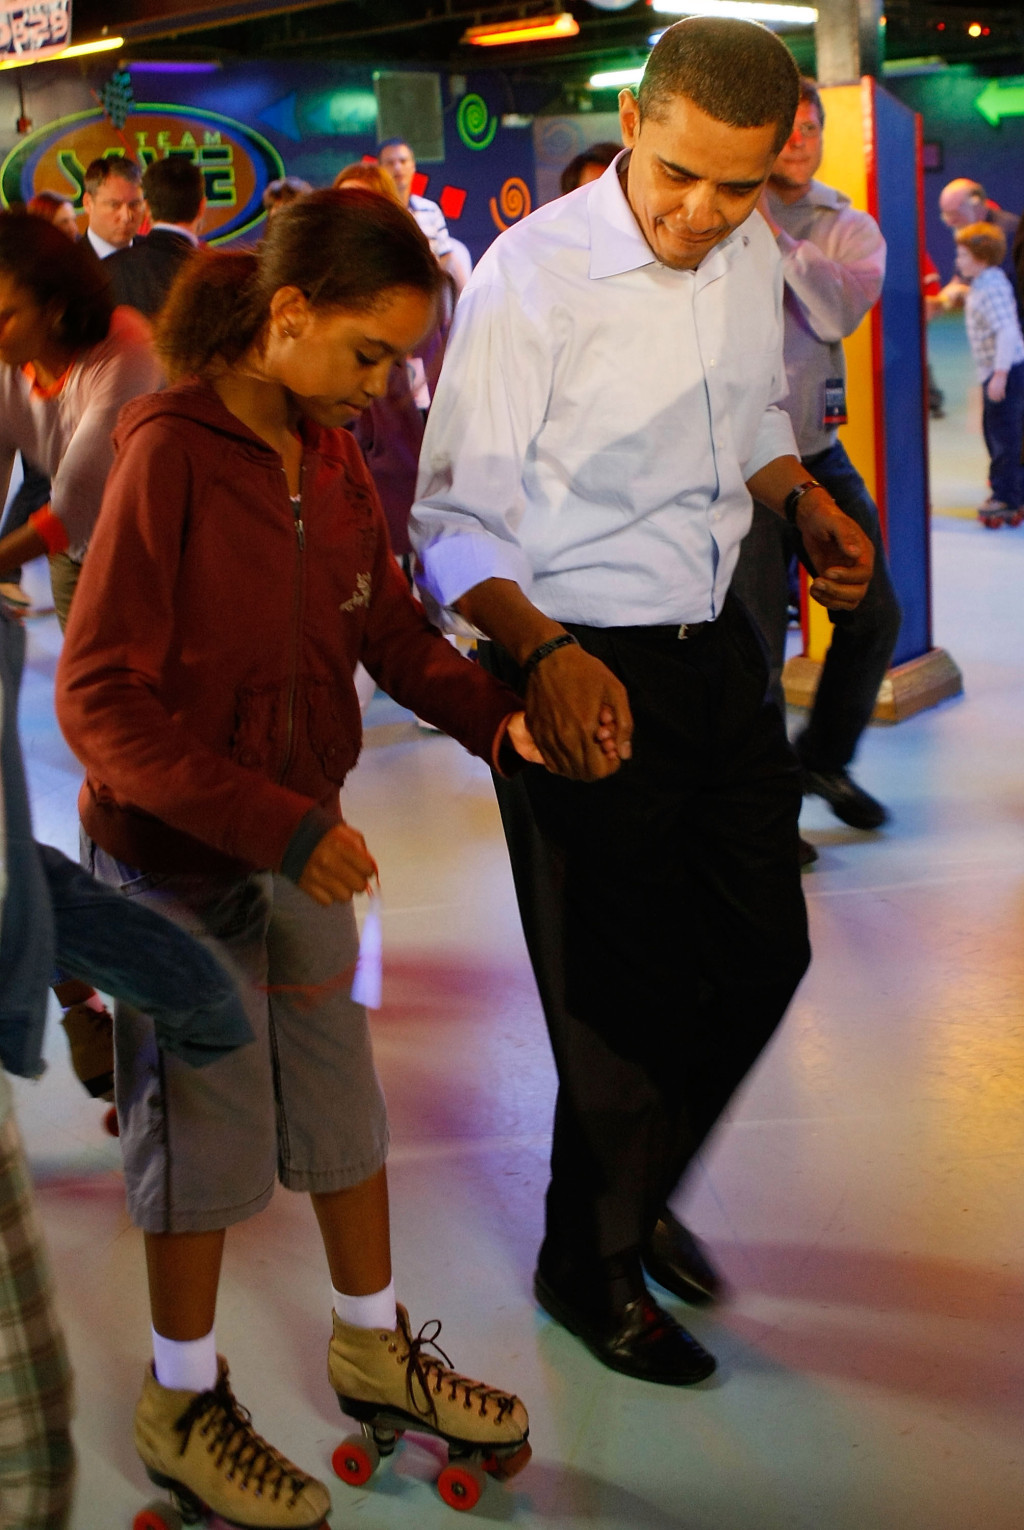 President Obama wit Daughter